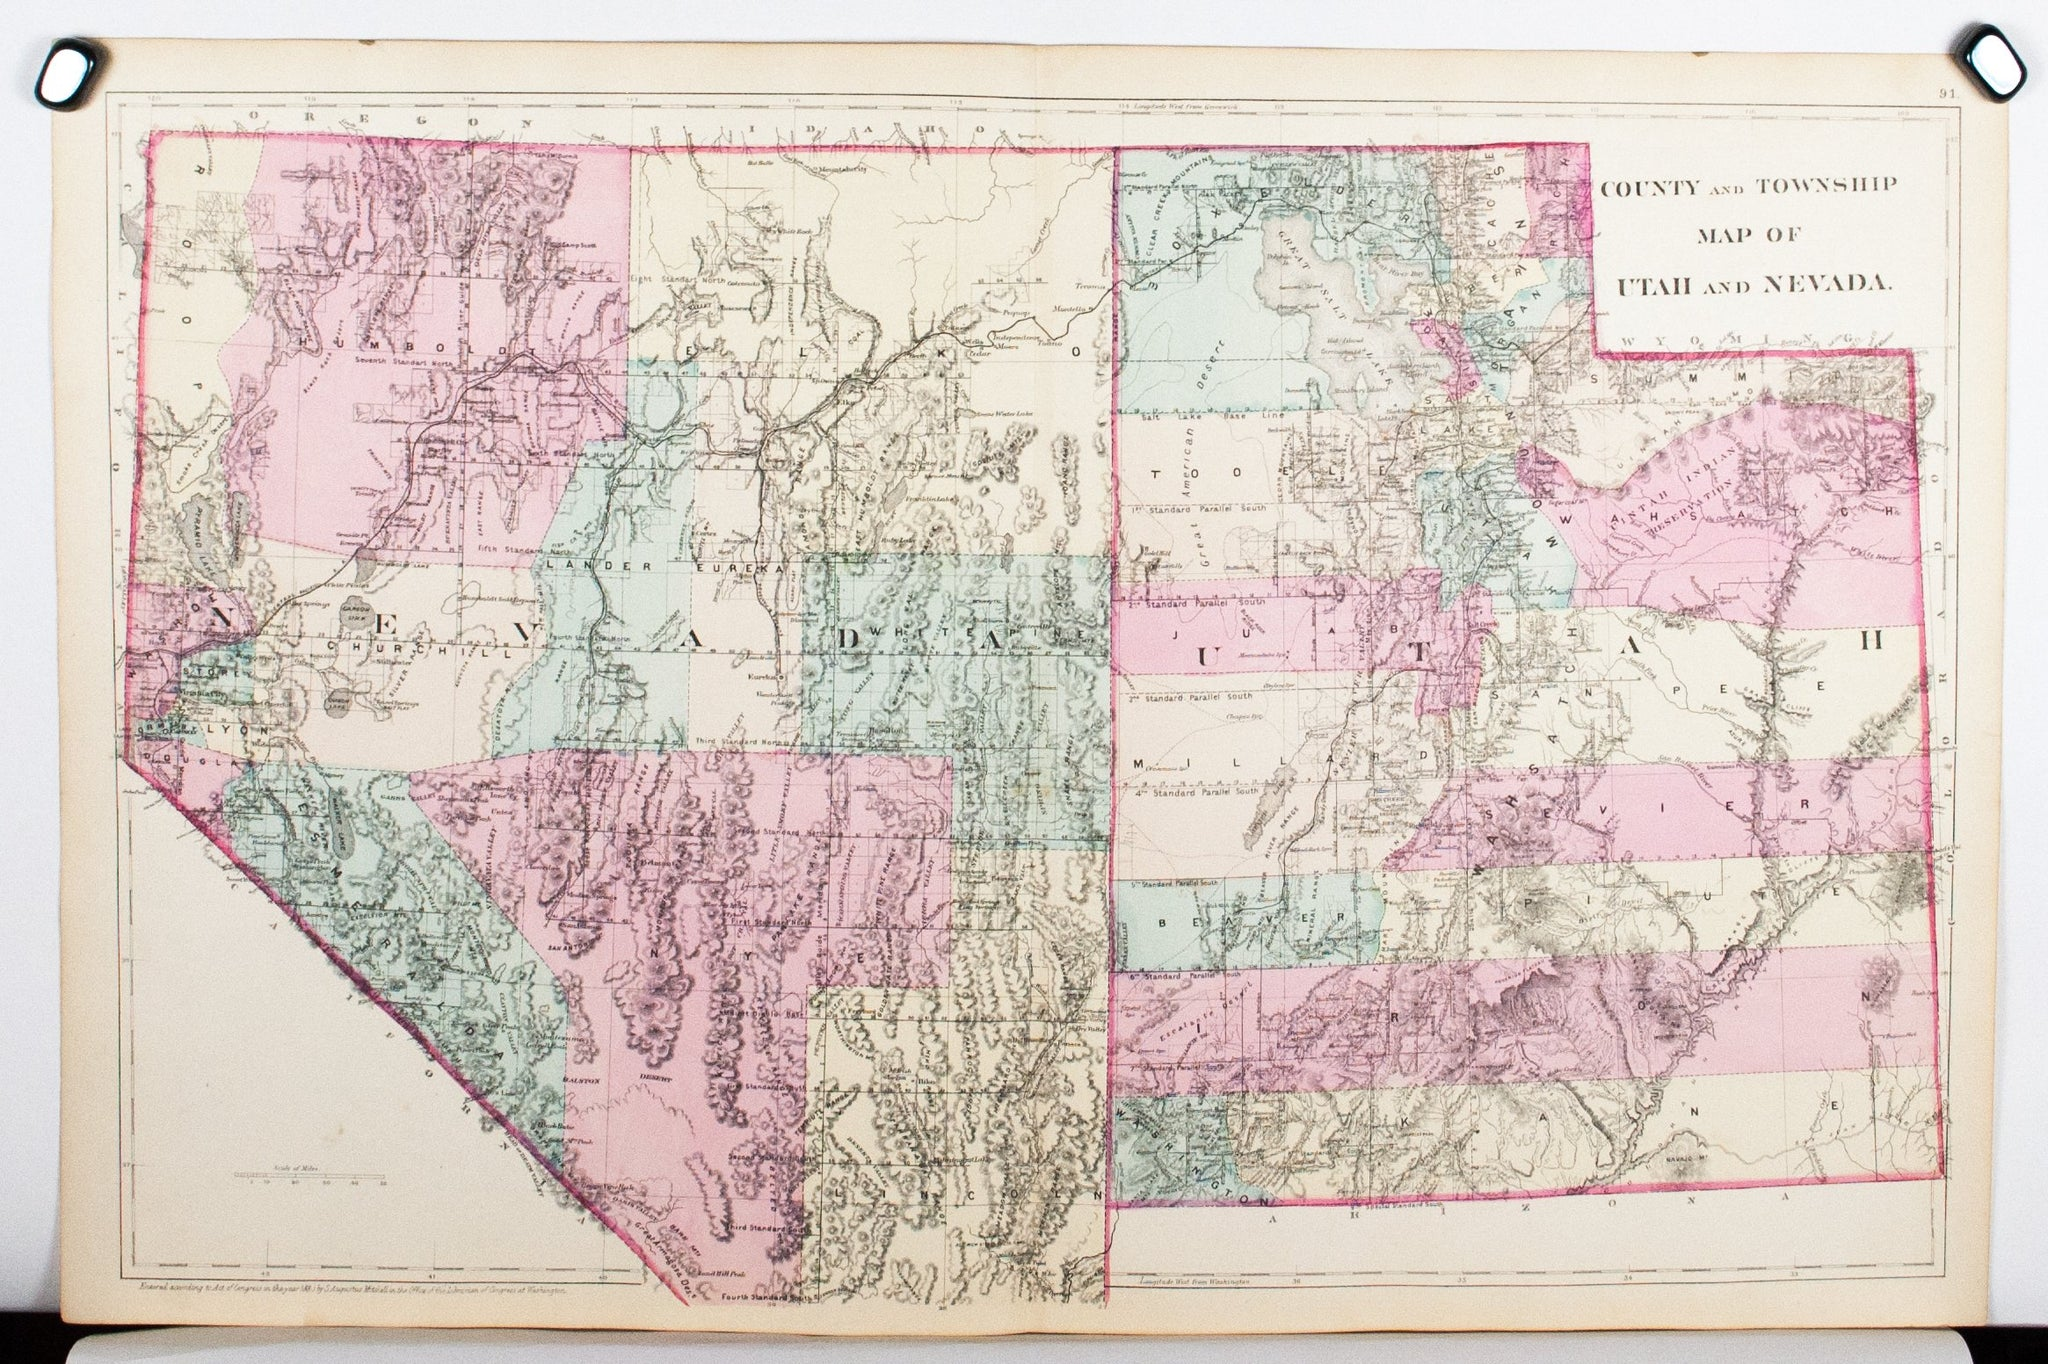 1881 County and Township Map of Utah and Nevada - S Mitc Jr on map of summit, utah state counties, map of emery, map of millard, map of education, map of kane, map of tooele, map of north ga, map of utilities, blank map utah counties, map idaho counties, map of wasatch front, map of washington, map of alaska boroughs, map of pennsylvania towns, map of cities, map of states, map of salt lake, map of transportation, map of wayne,